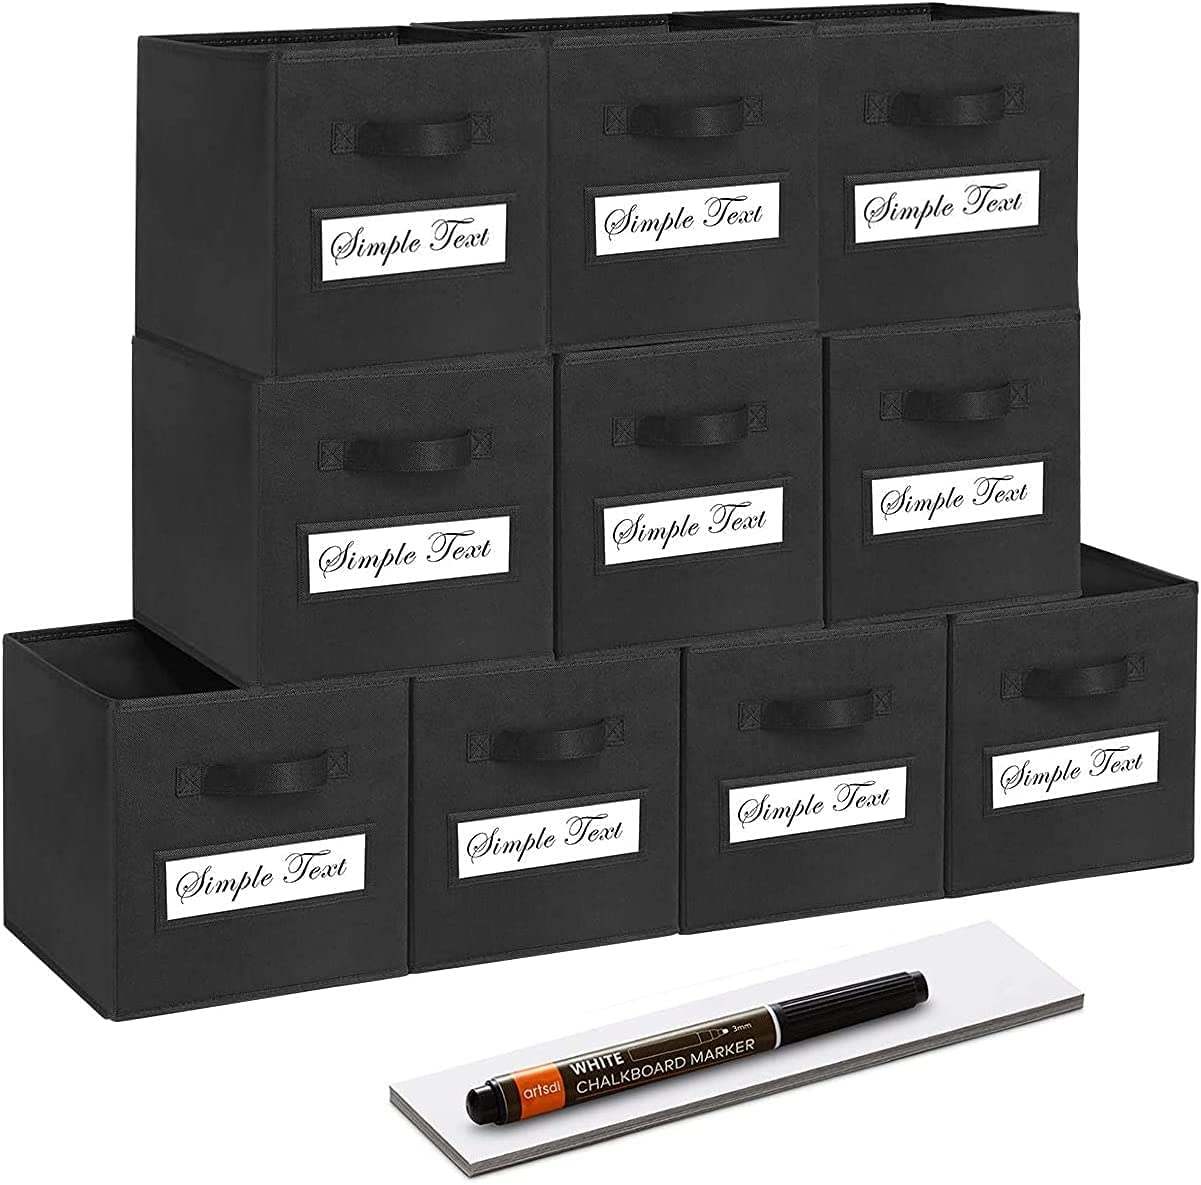 artsdi Set of 10 Storage Cubes, Foldable Fabric Cube Storage Bins with 10 Labels Window Cards & a Pen, Collapsible Cloth Baskets Containers for Shelves, Closet Organizers Box for Home &Office,Black